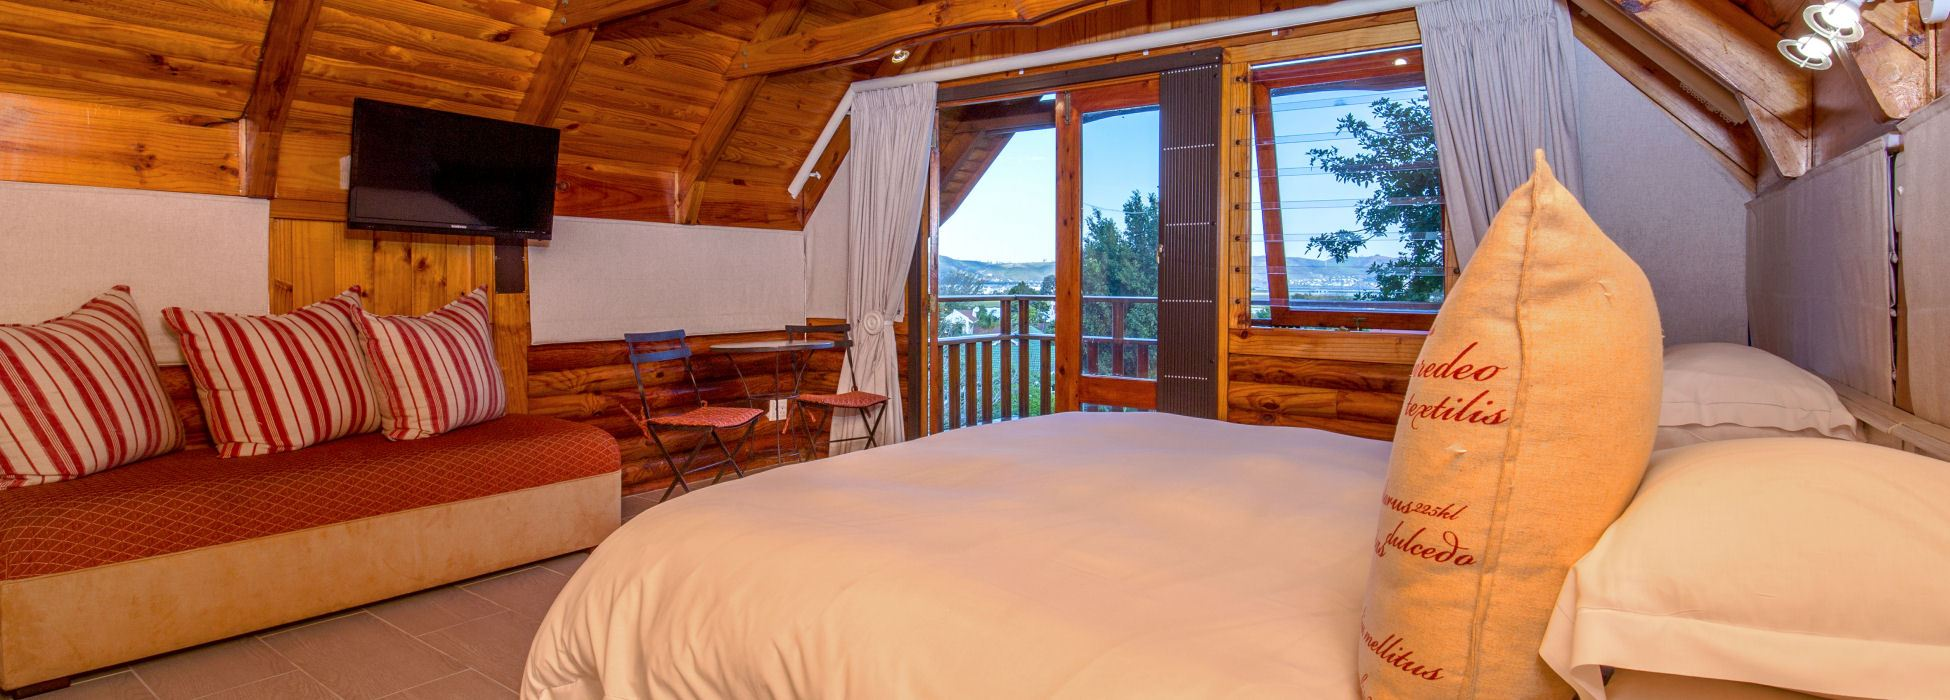 Self Catering Log Cabin Accommodation Abalone Lodges Knysna Garden Route South Africa